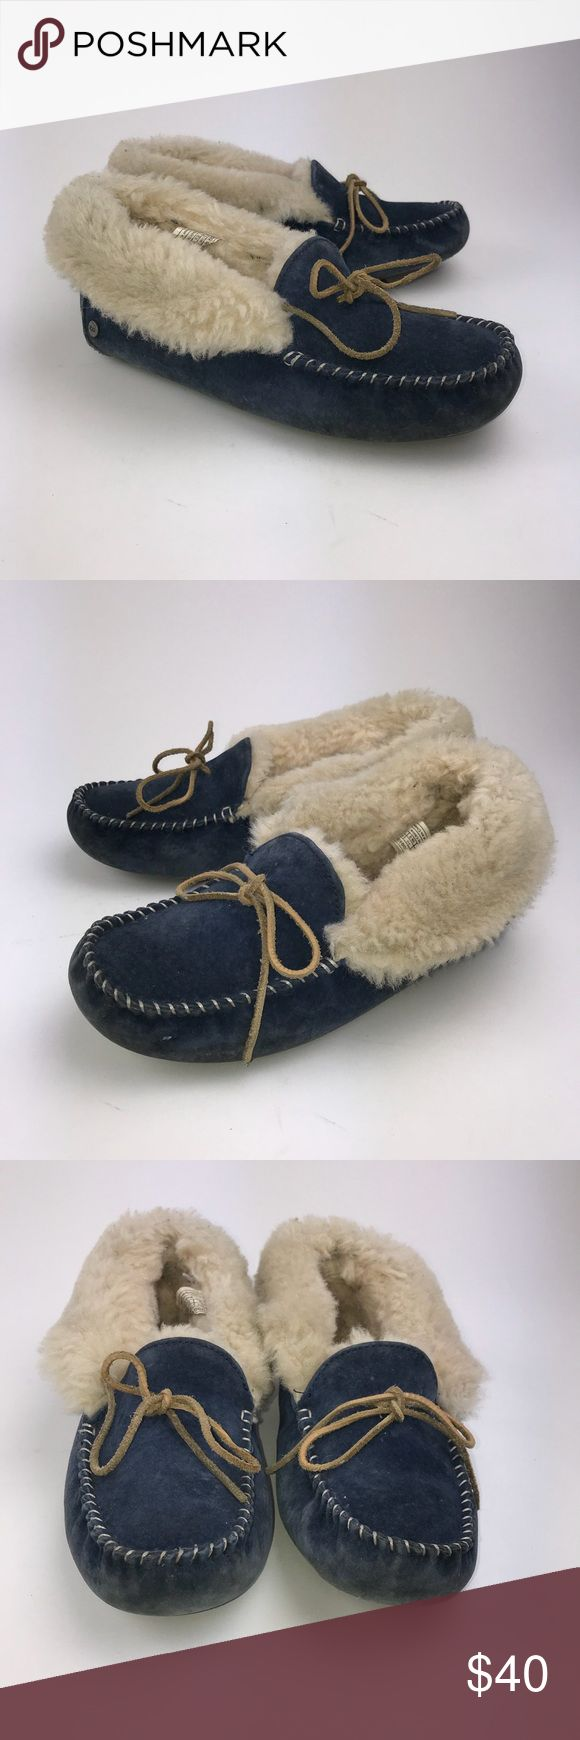 UGG Women's Blue Alena Fold down Slippers Size 8 UGG Australia  Women's Alena Fold down Slippers Blue Size 8 Pre-owned  *Any defects or signs of wear are shown in images   PM340 UGG Shoes